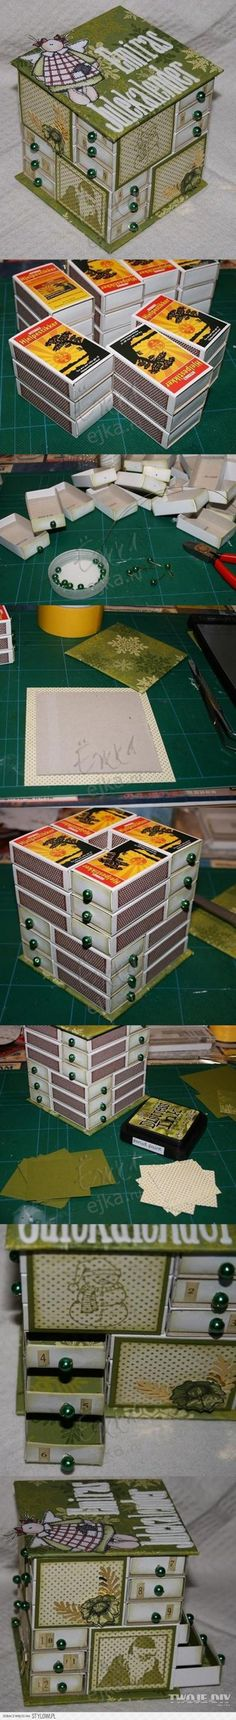 Matchbox Mini Chest of Drawers Matchbox Crafts, Matchbox Art, Fun Crafts, Diy And Crafts, Arts And Crafts, Diy Paper, Paper Crafting, Craft Projects, Projects To Try